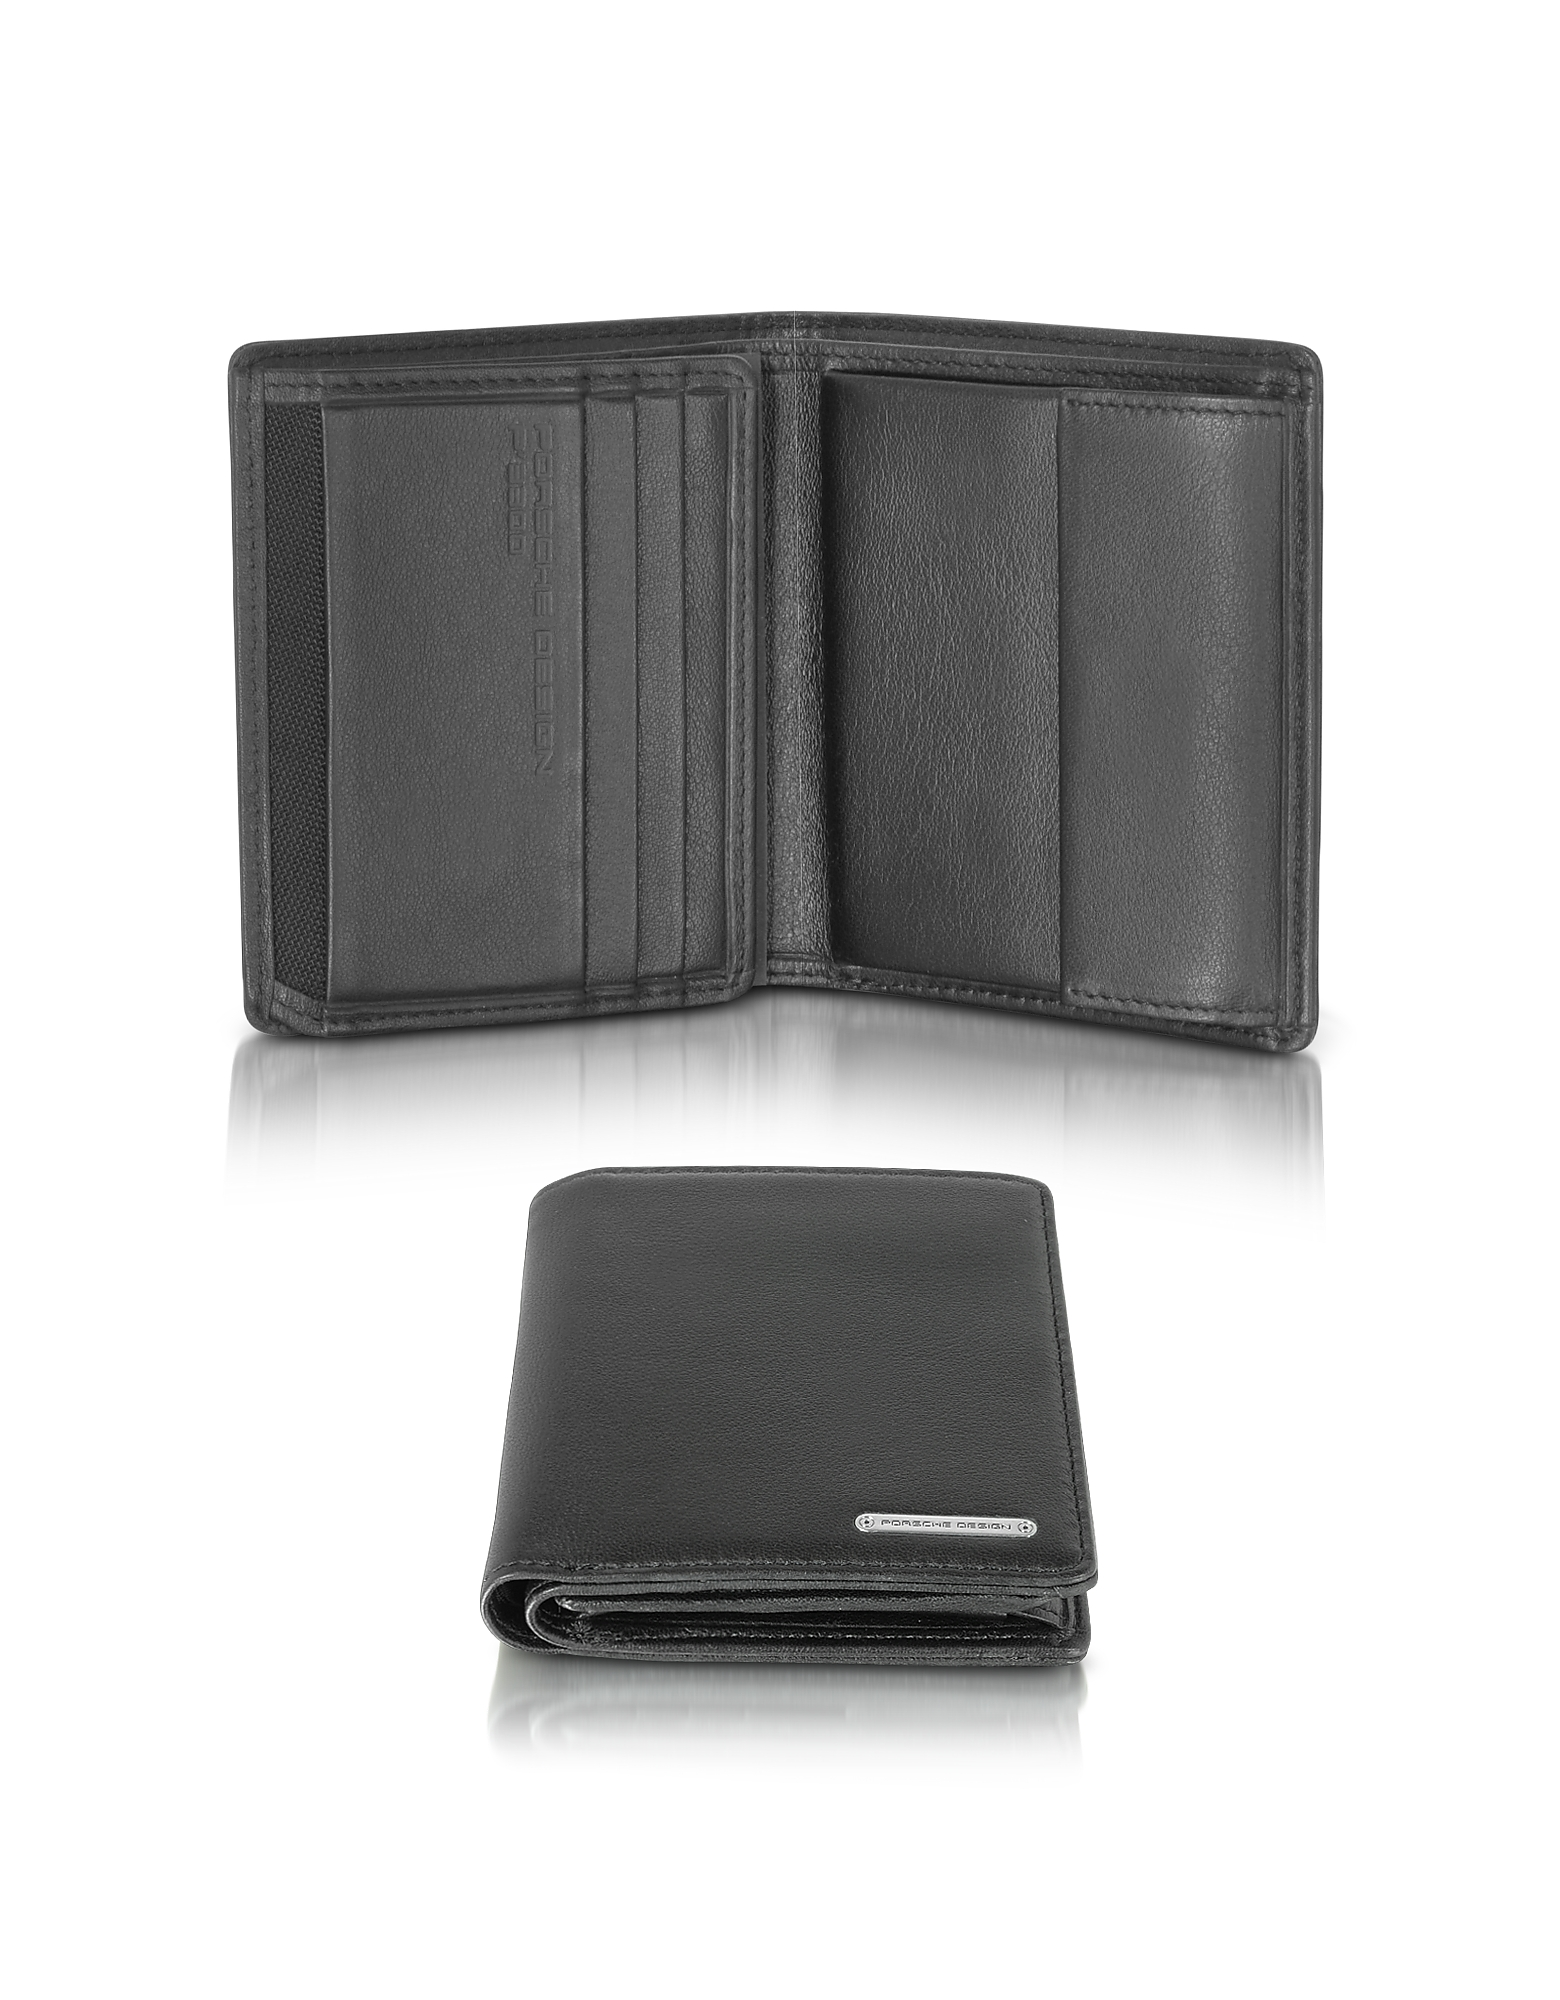 Porsche Design Wallets, CL 2.0 Black Square Leather Wallet w/Coin Pocket